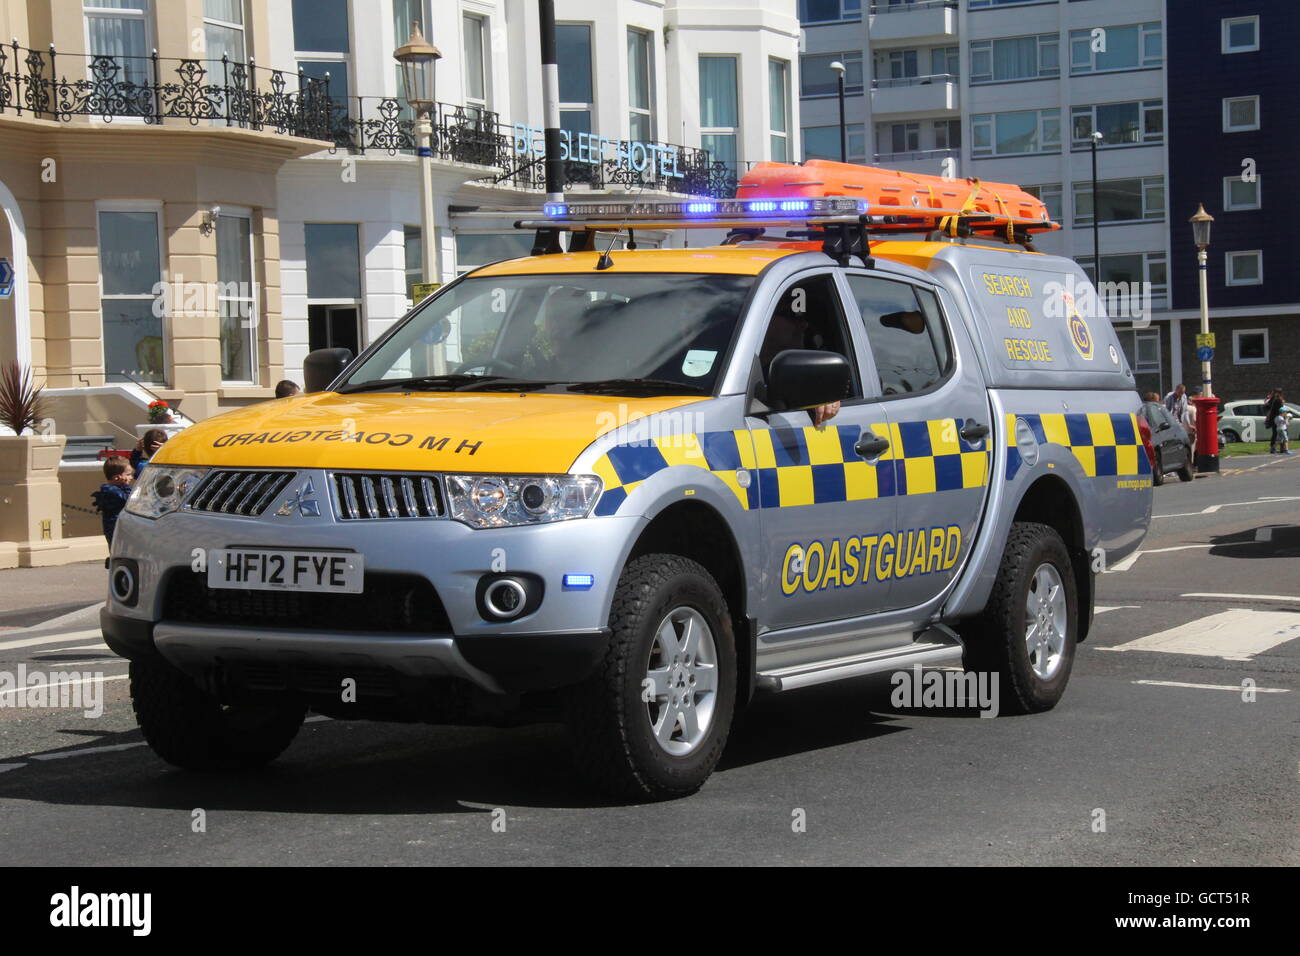 A SUNNY NEARSIDE VIEW OF A H. M. COASTGUARD 4-WHEEL DRIVE VEHICLE WITH BLUE LIGHTS FLASHING TRAVELLING ALONG A ROAD - Stock Image